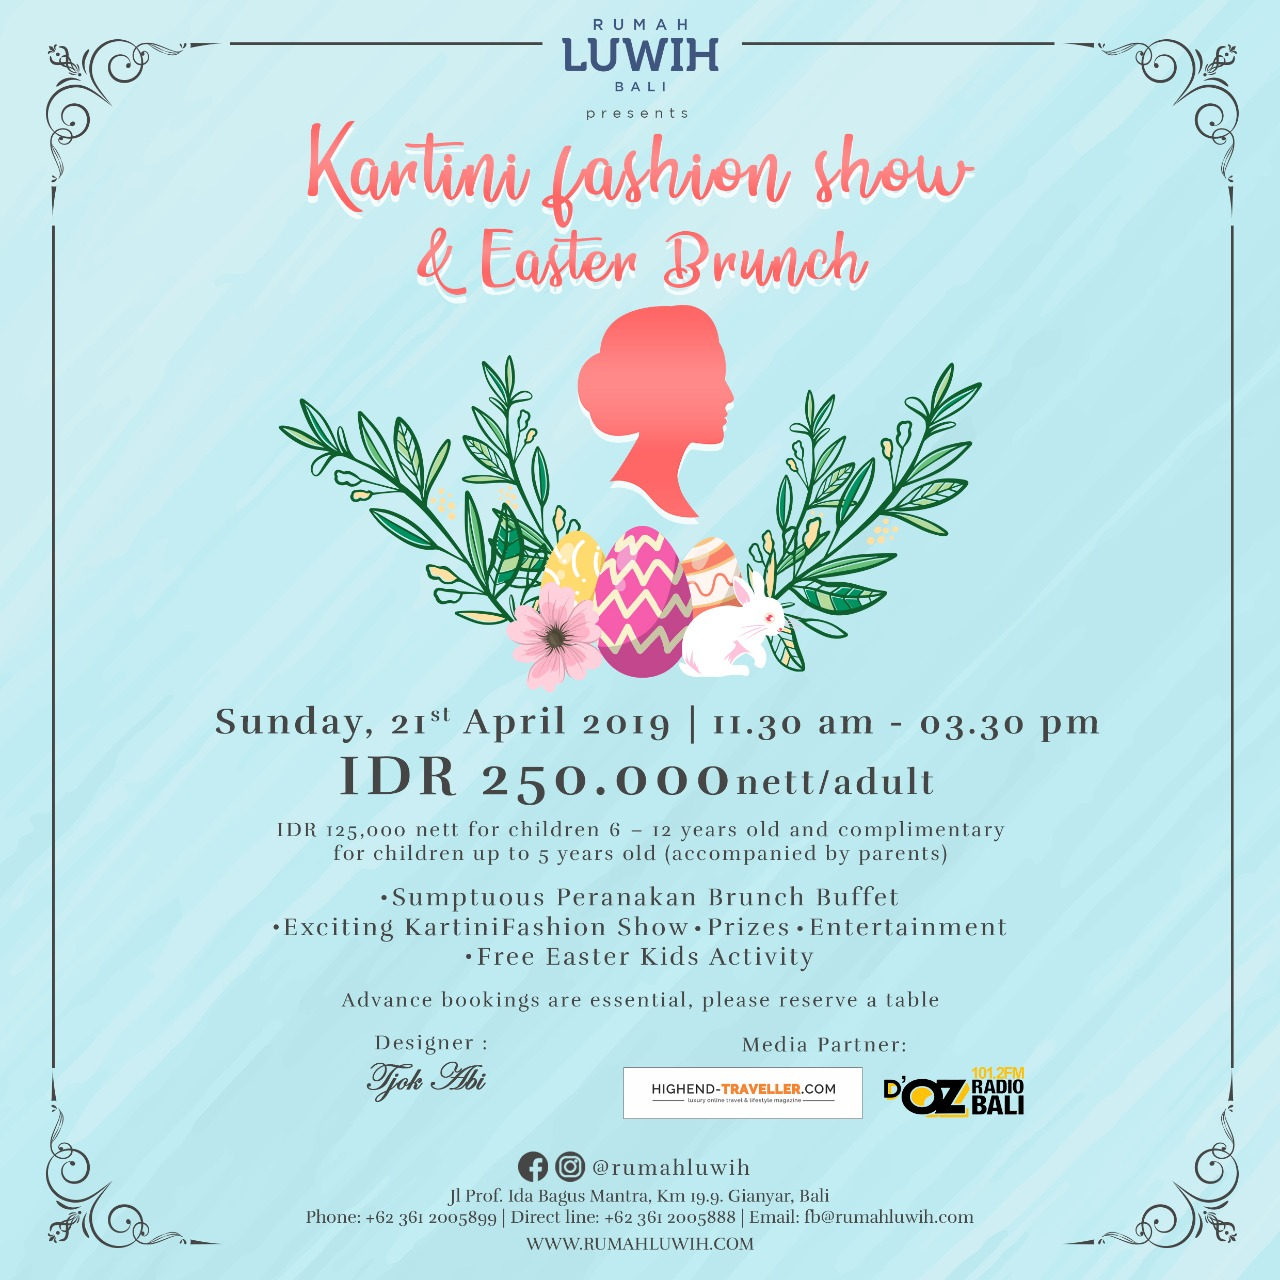 http://highend-traveller.com/kartini-fashion-show-easter-brunch/